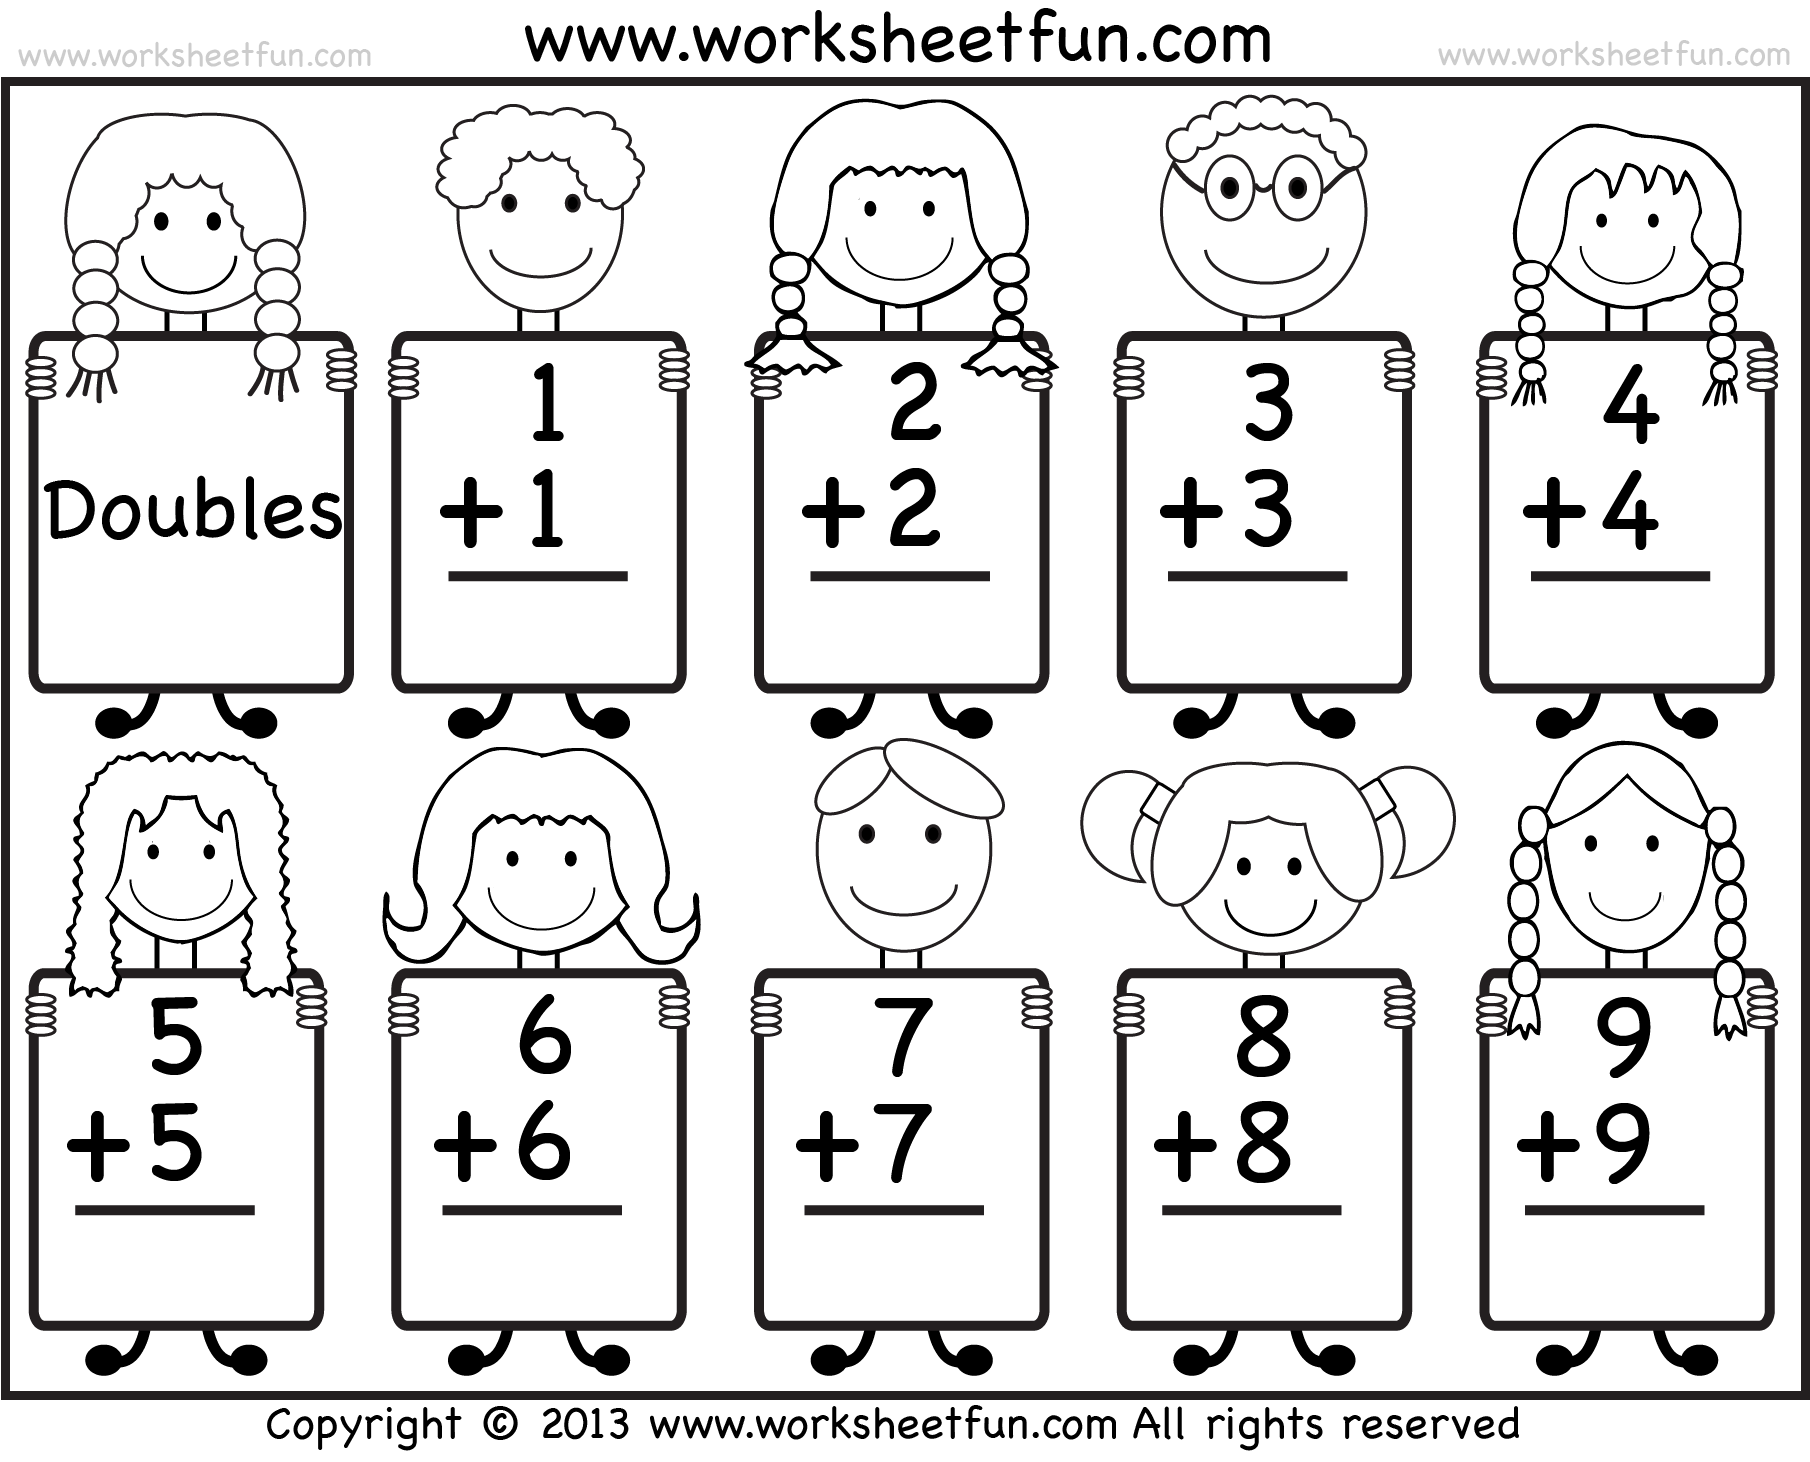 worksheet Adding Doubles addition doubles facts beginner worksheet free doubles